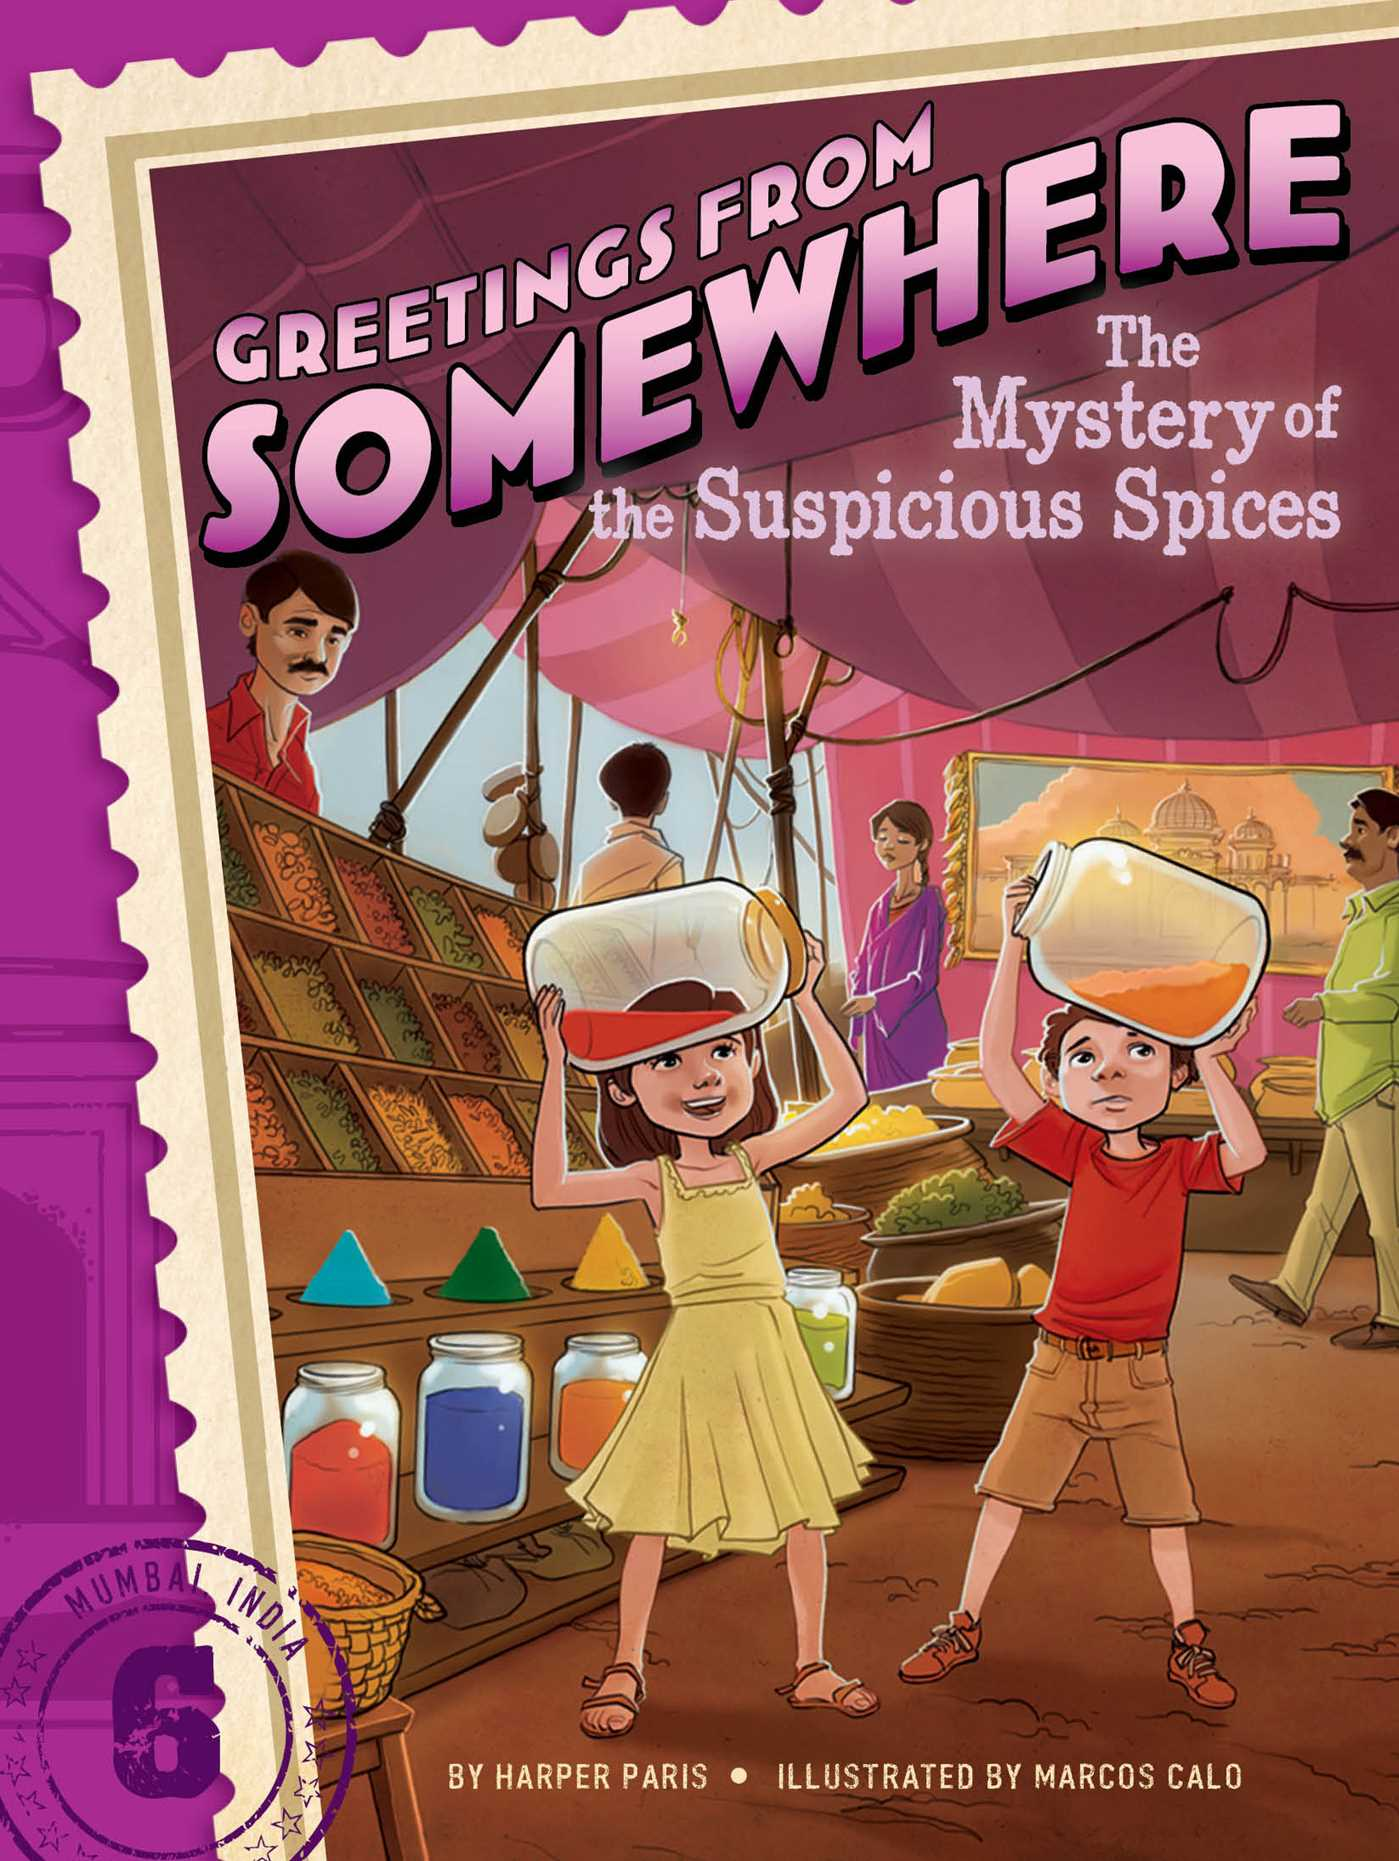 The-mystery-of-the-suspicious-spices-9781481414692_hr